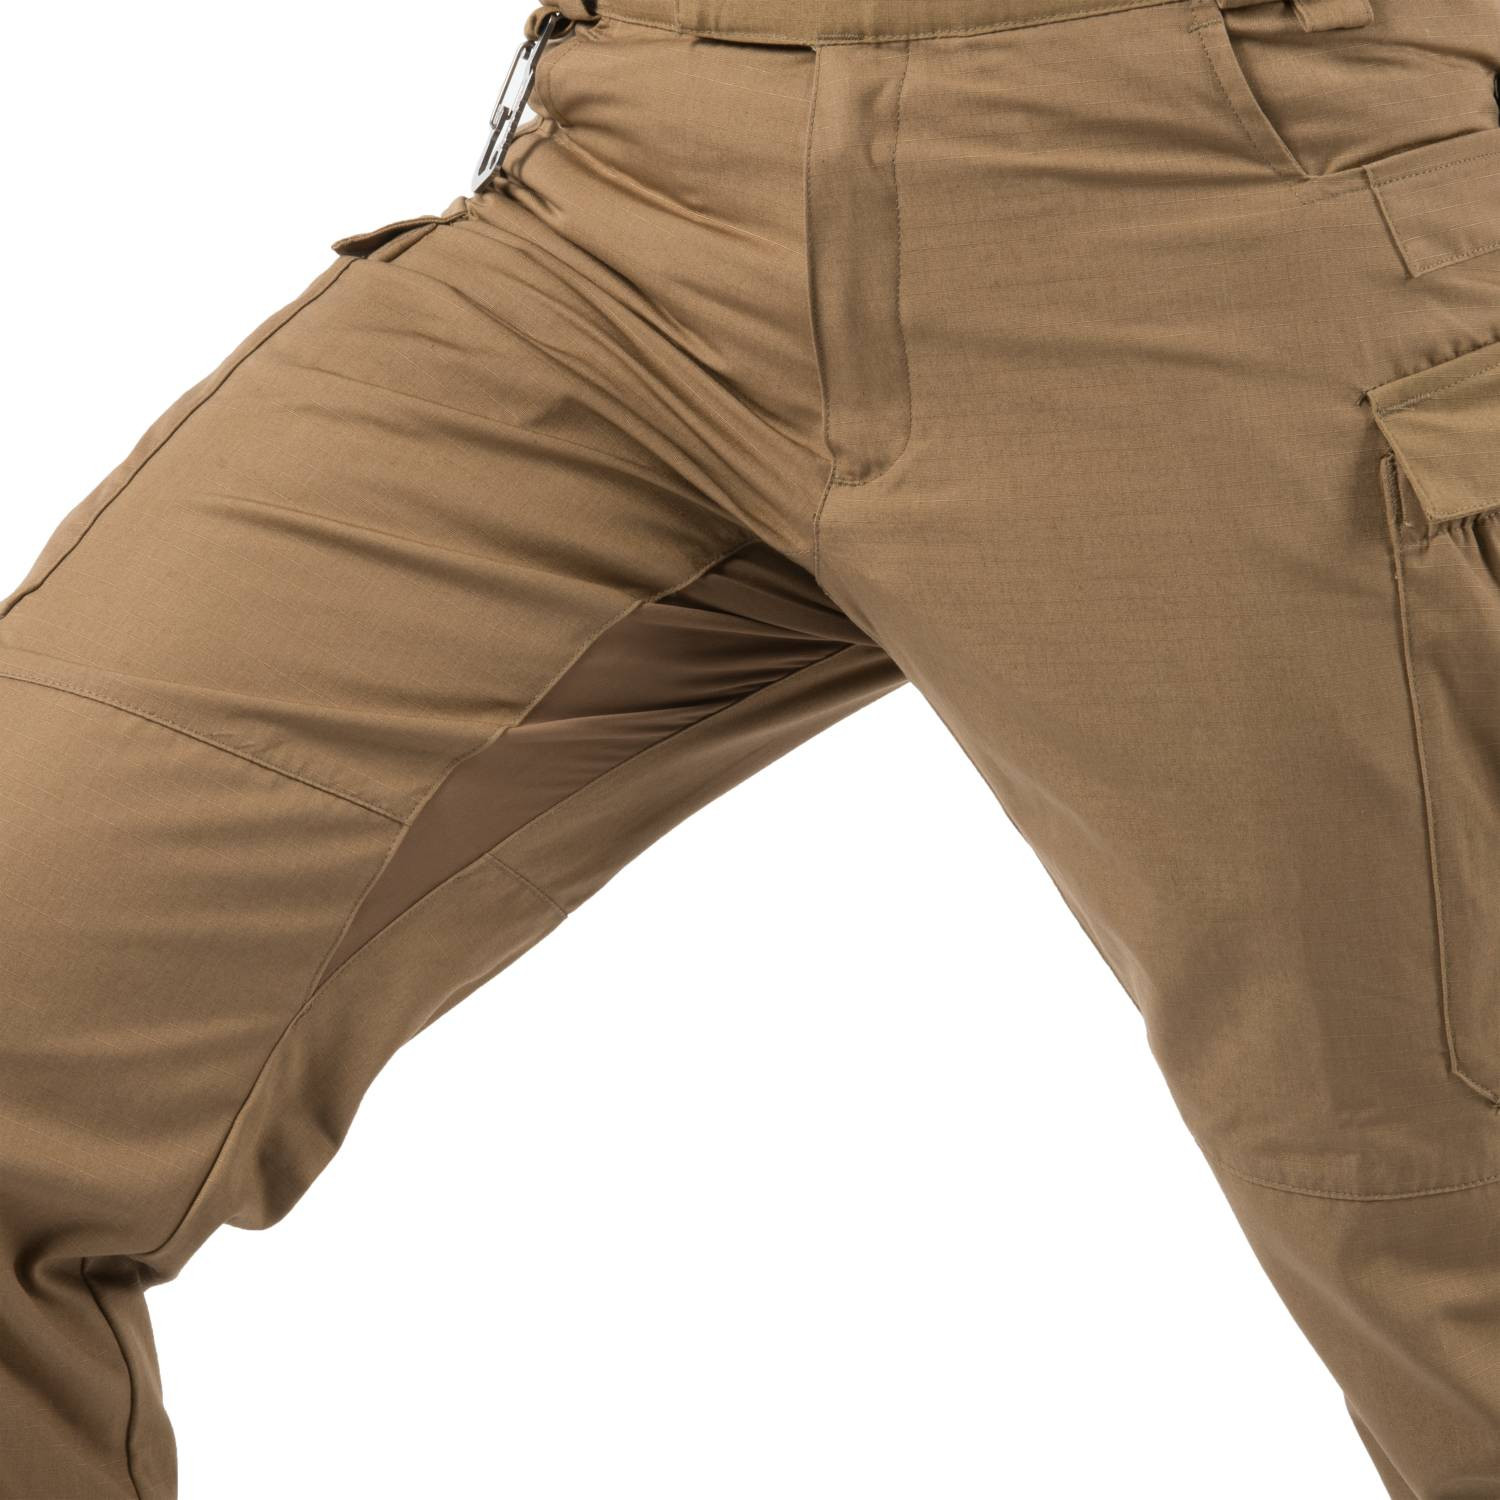 MBDU® Trousers - NyCo Ripstop Detail 10